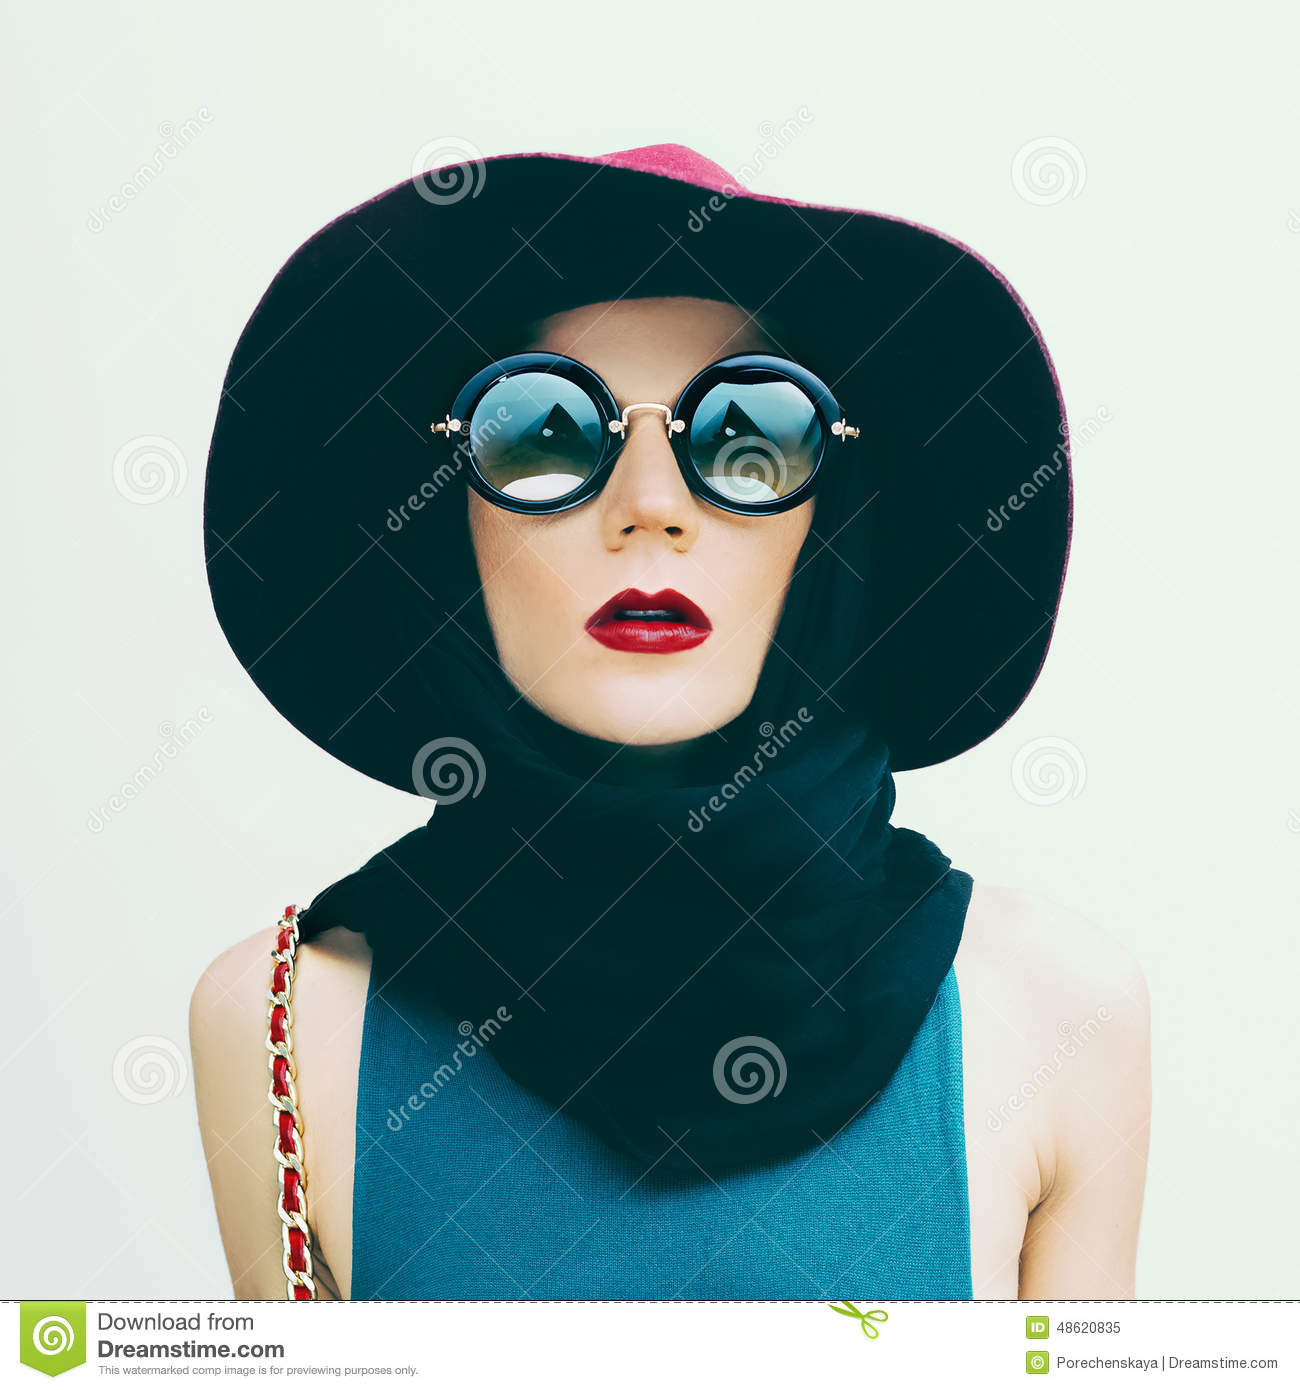 Glamorous Lady In Vintage Hat And Sunglasses Trend